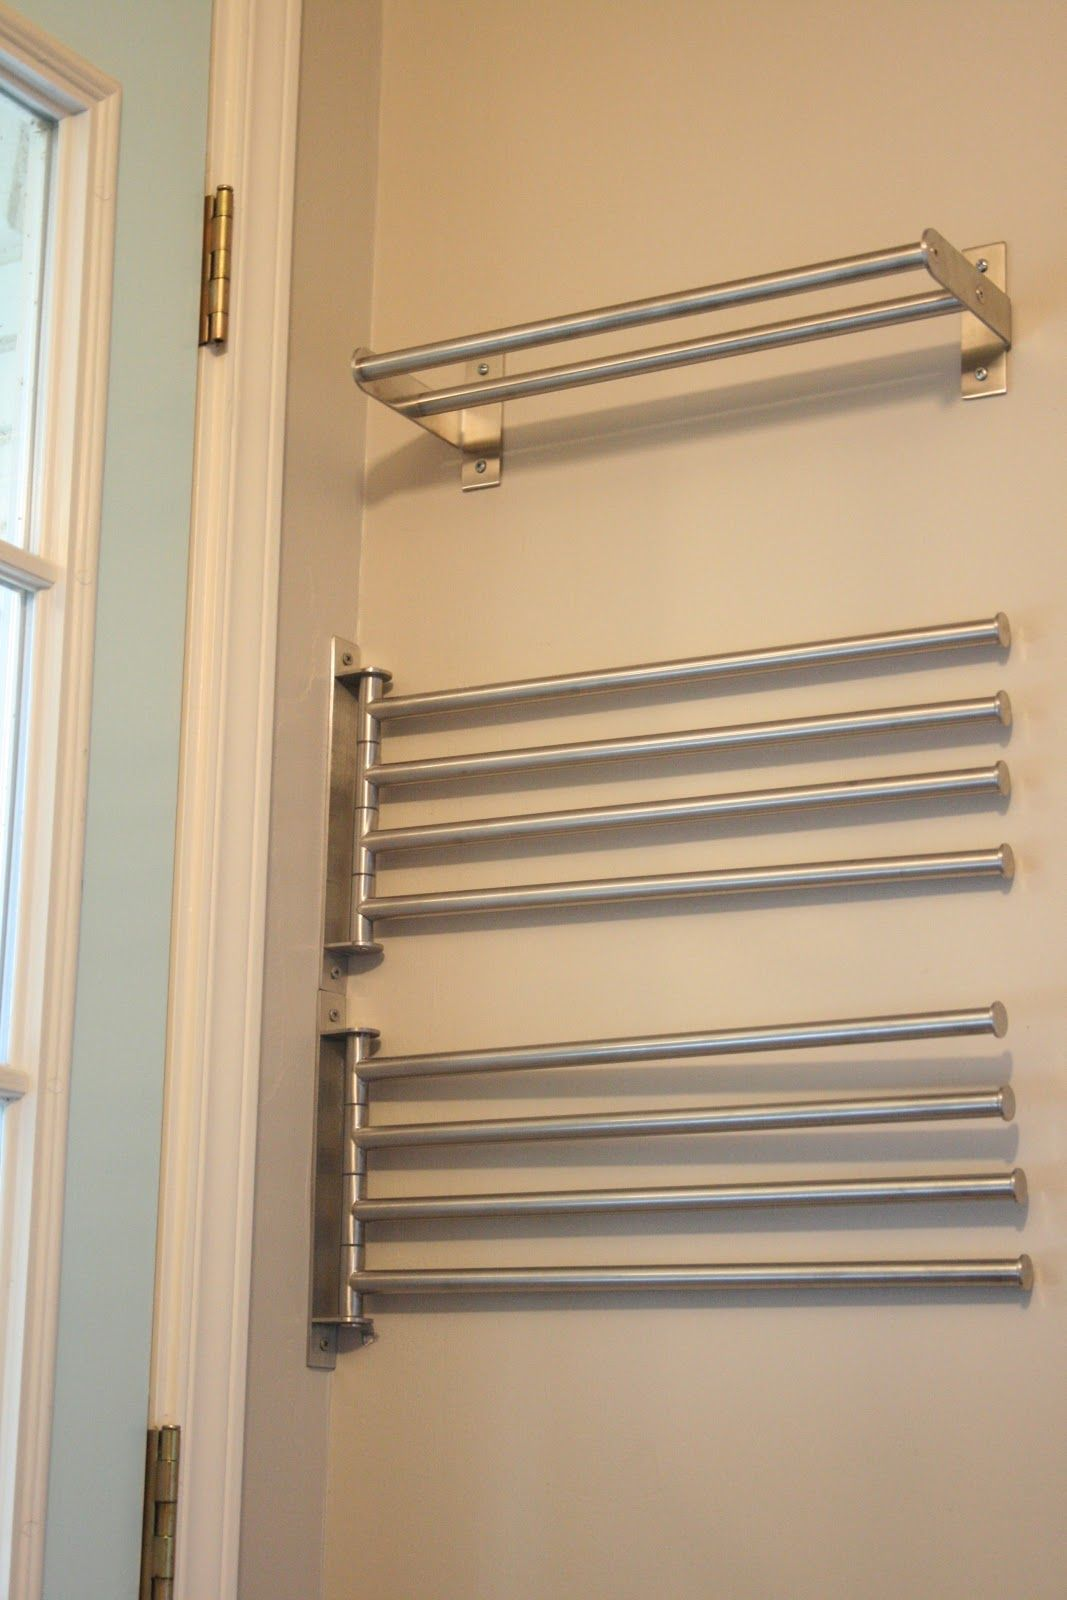 Laundry Hanging Bar We Have This And Love It Its In Our Upstairs Hallway And Not One